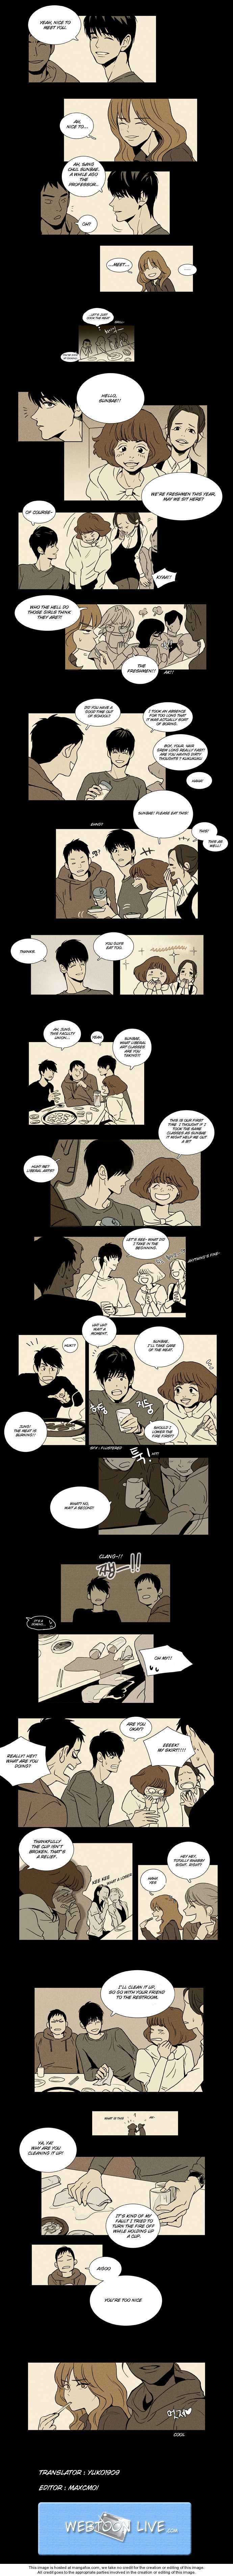 Cheese In The Trap 3 Page 2